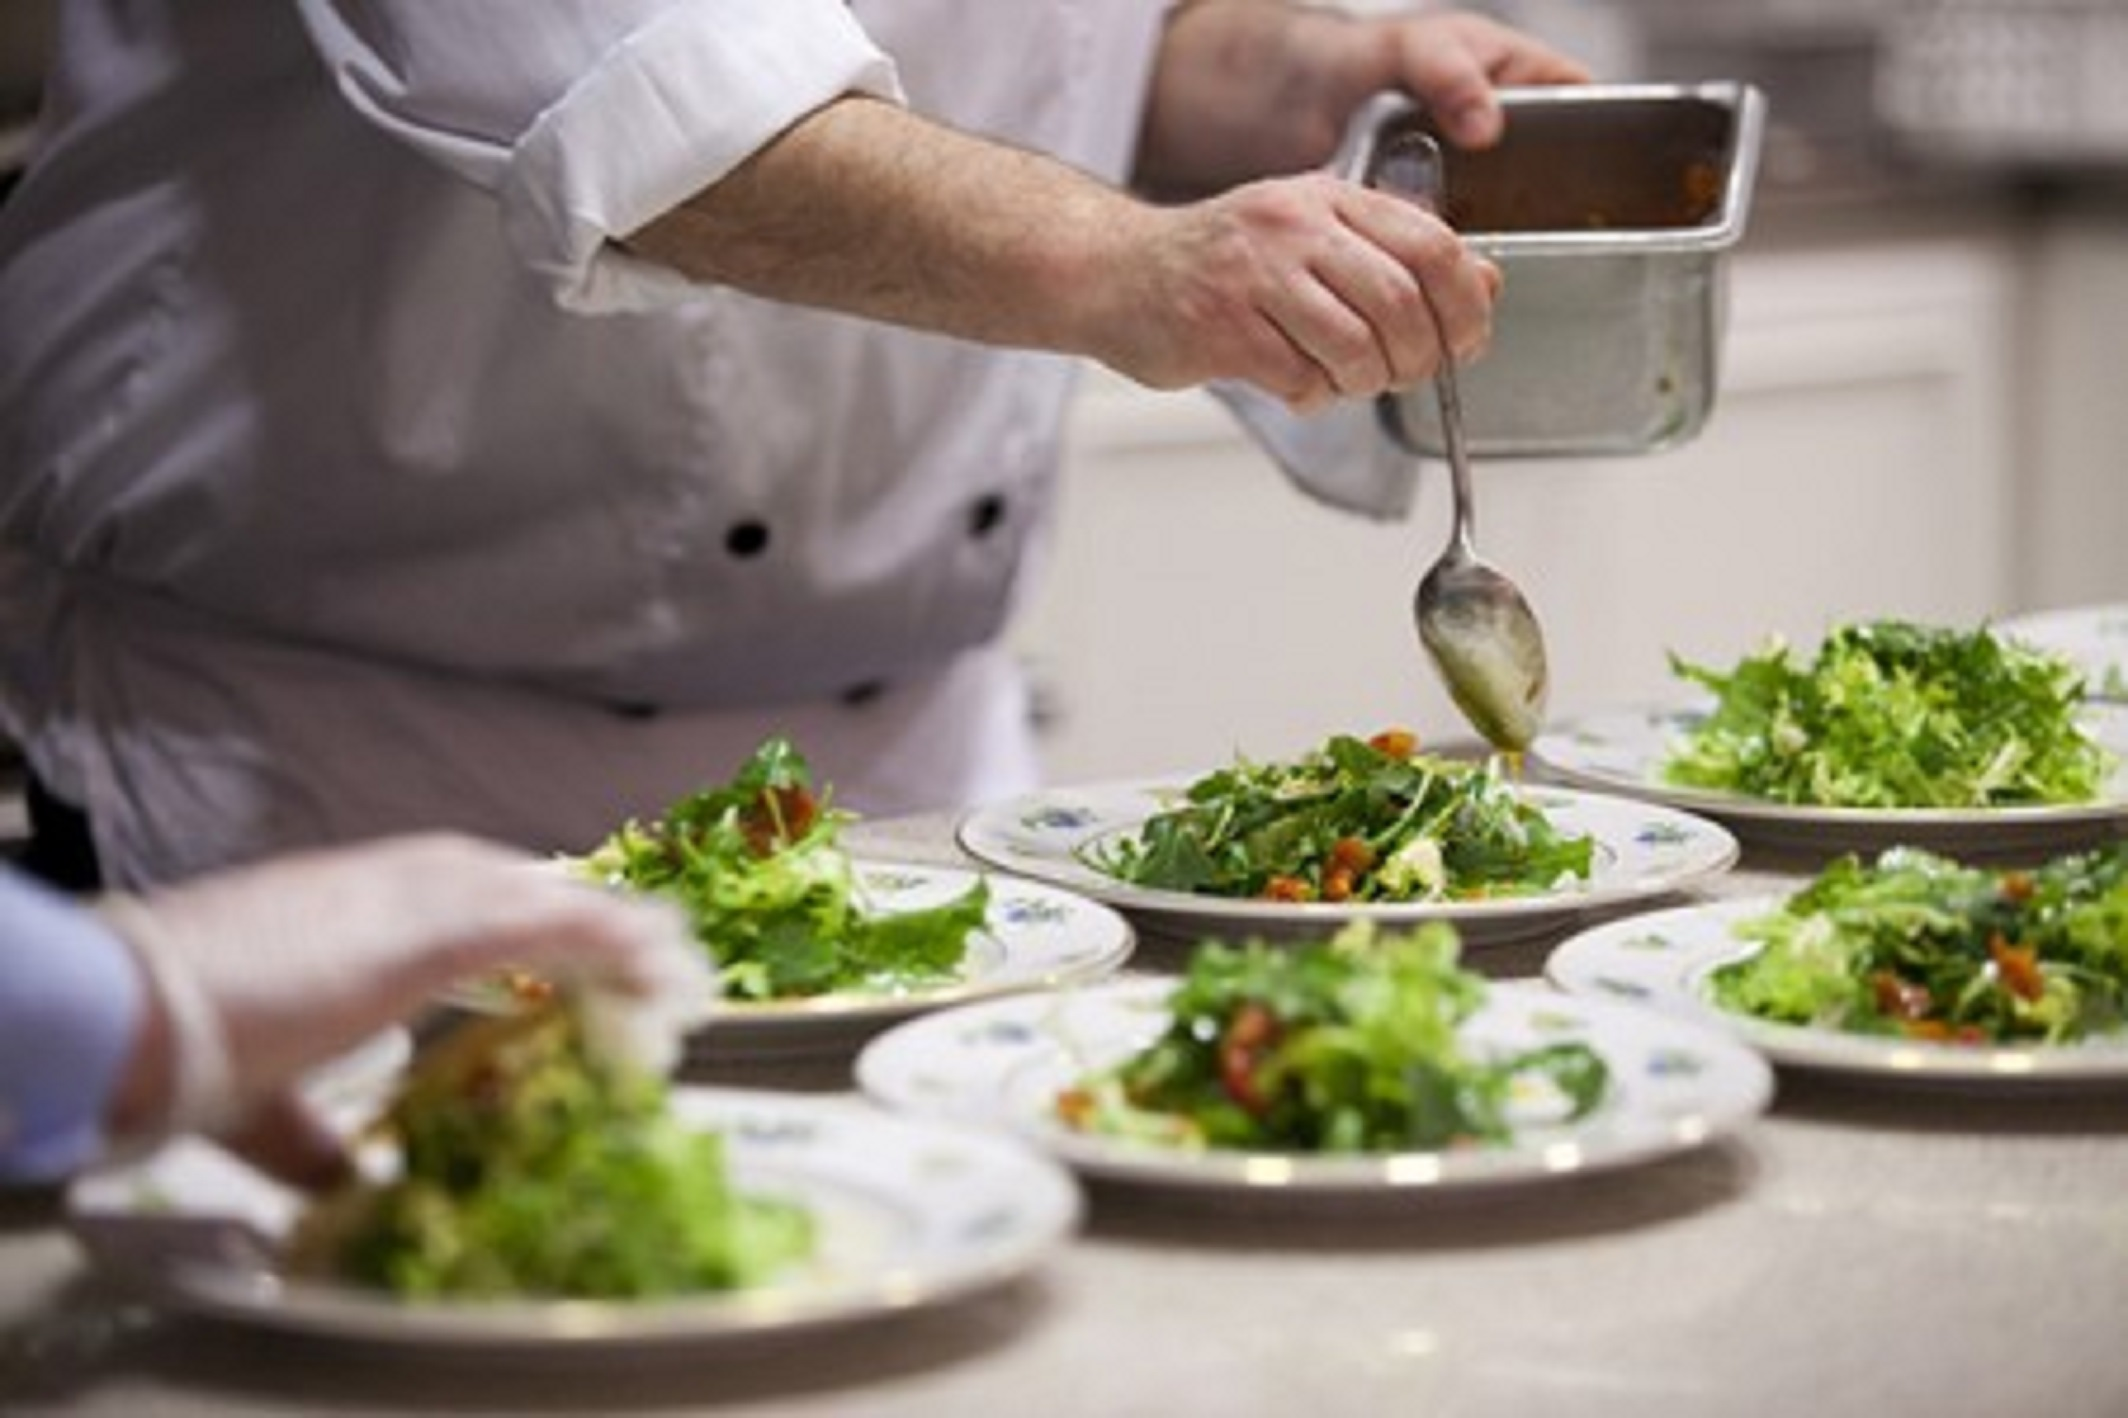 catering-image1-1.jpg